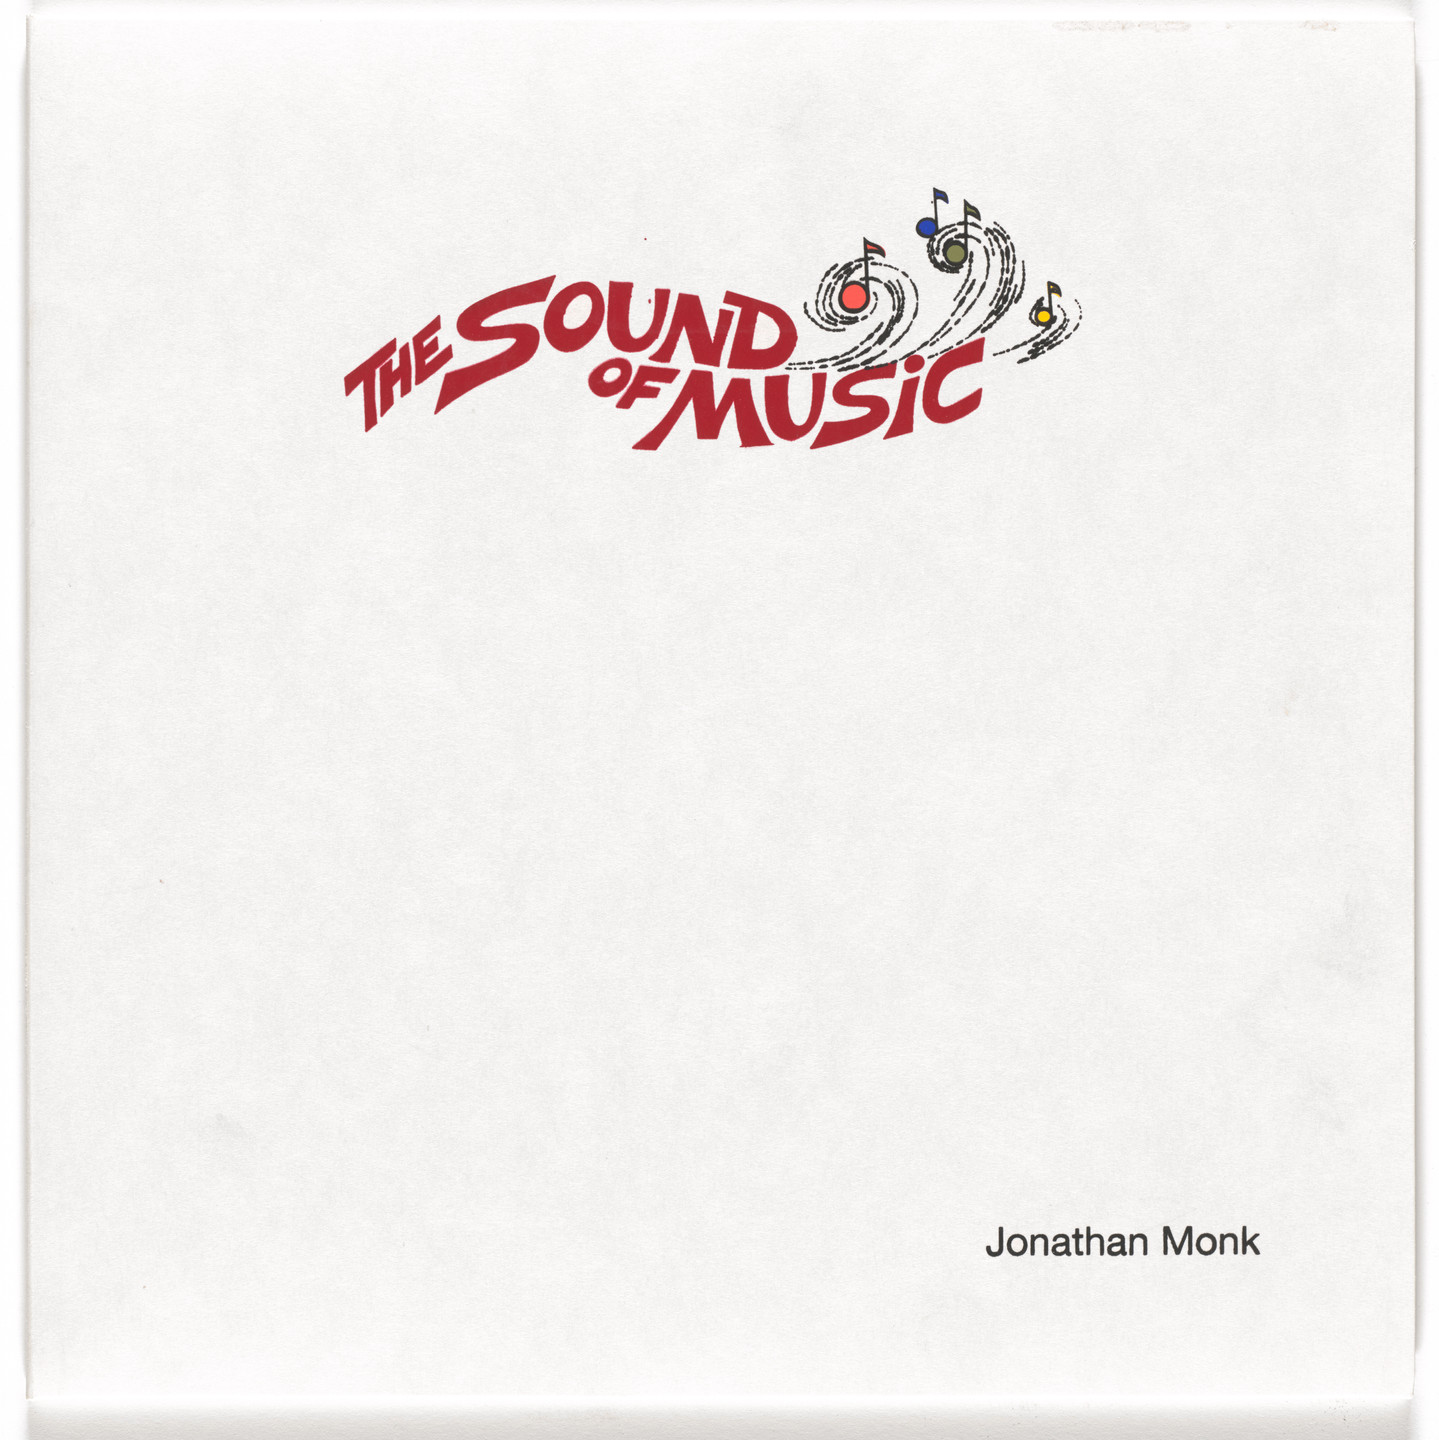 Jonathan Monk. The Sound of Music (A record with the sound of its own making*). 2007